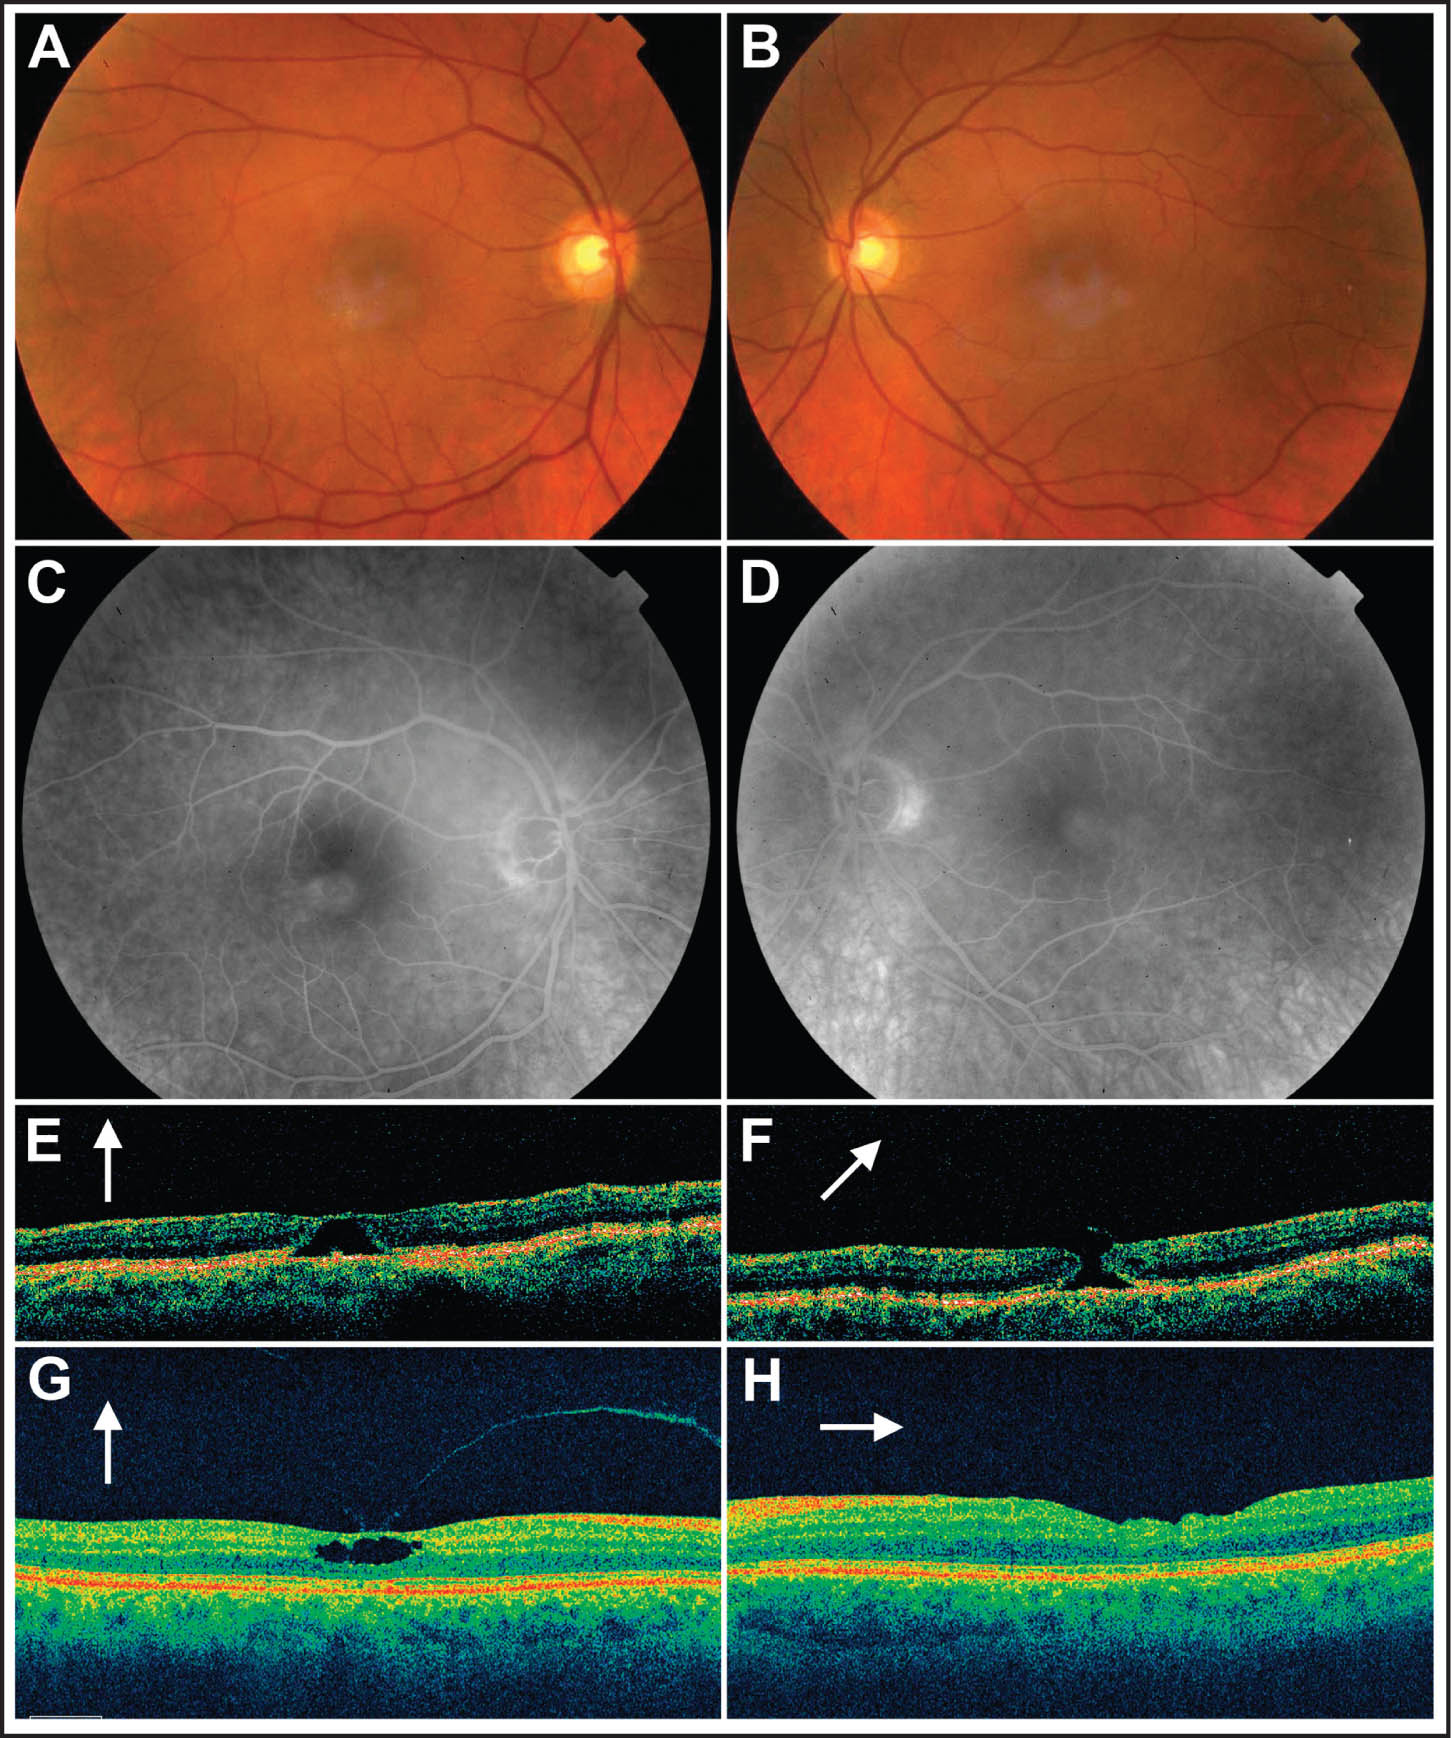 A 64-Year-Old Man with a History of Idiopathic Macular Telangiectasia Type 2 Complained of Distorted and Decreased Vision in His Left Eye for 6 Weeks. Fundus Photographs Show Grayish Opacification Around the Fovea in the Right (A) and Left (B) Eye. Intraretinal Staining in the Late Phases of Fluorescein Angiogram Is Seen in the Right (C) and the Left (D) Eye. (E) The Stratus OCT III (Carl Zeiss Meditec, Dublin, CA) Showed a Large Cystoid Cavitation Under the Intact Internal Limiting Membrane in the Right Eye. (F) Stratus OCT Taken Preoperatively Shows a Small Full-Thickness Macular Hole in the Left Eye. (G) Spectral-Domain Cirrus OCT of the Right Eye, Taken a Year Later, Shows a Large Foveal Cavitation. (H) Spectral-Domain Cirrus OCT Through the Fovea, Taken 1 Year After the Surgery, Shows Macular Hole Closure in the Left Eye. External Limiting Membrane and Inner–Outer Segment Junction of Photoreceptors Are Preserved.